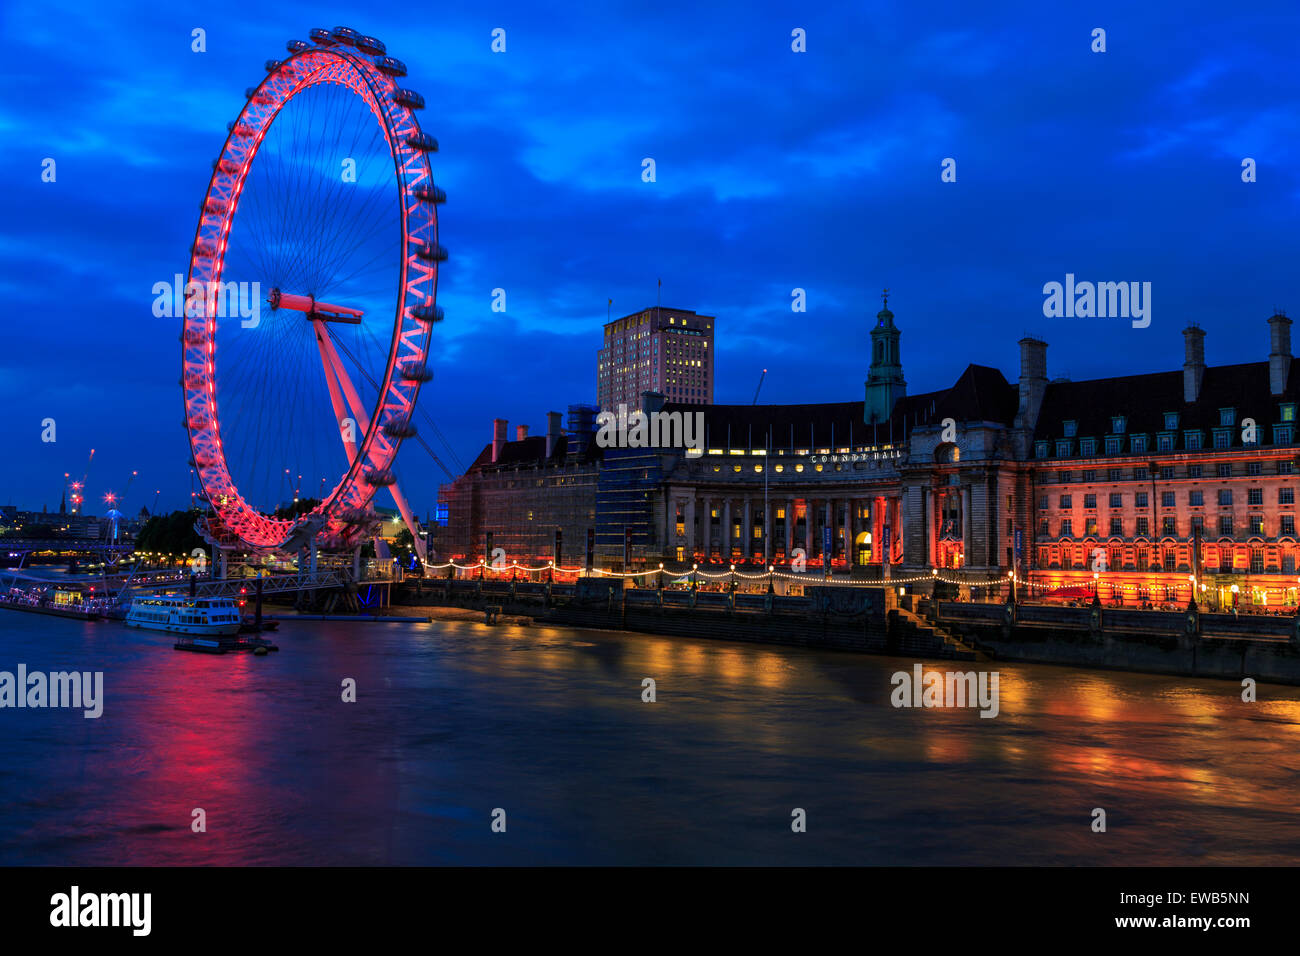 Landscape image of the London Eye and County Hall on the South Bank of the River Thames at dusk London England UK Stock Photo